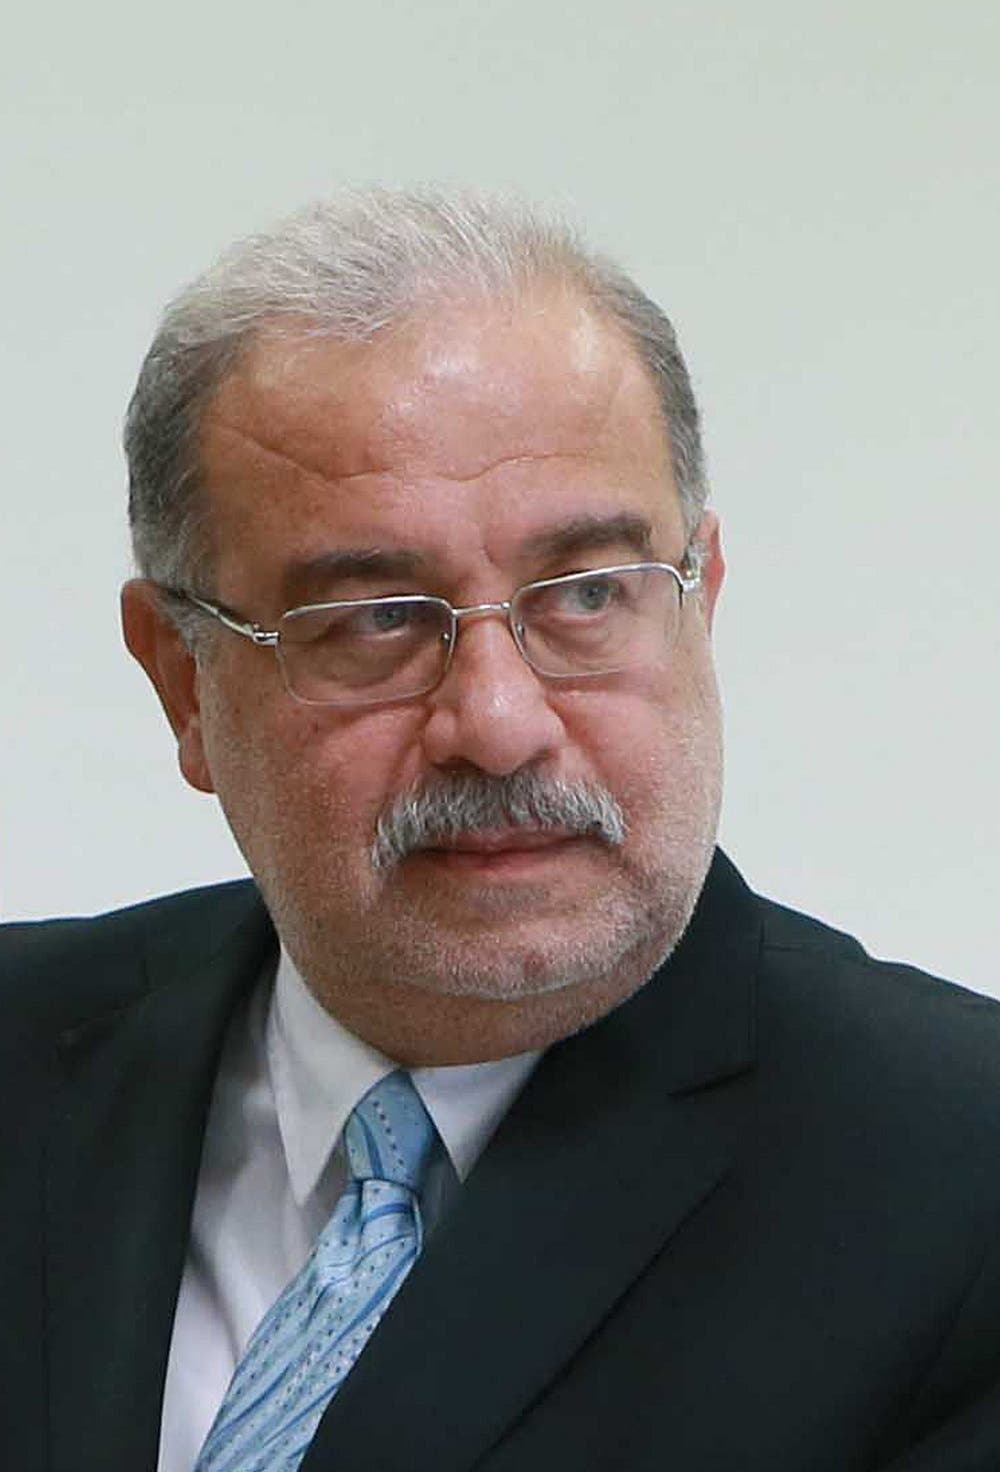 The president also asked Oil Minister Sherif Ismail to form a new cabinet. AFP